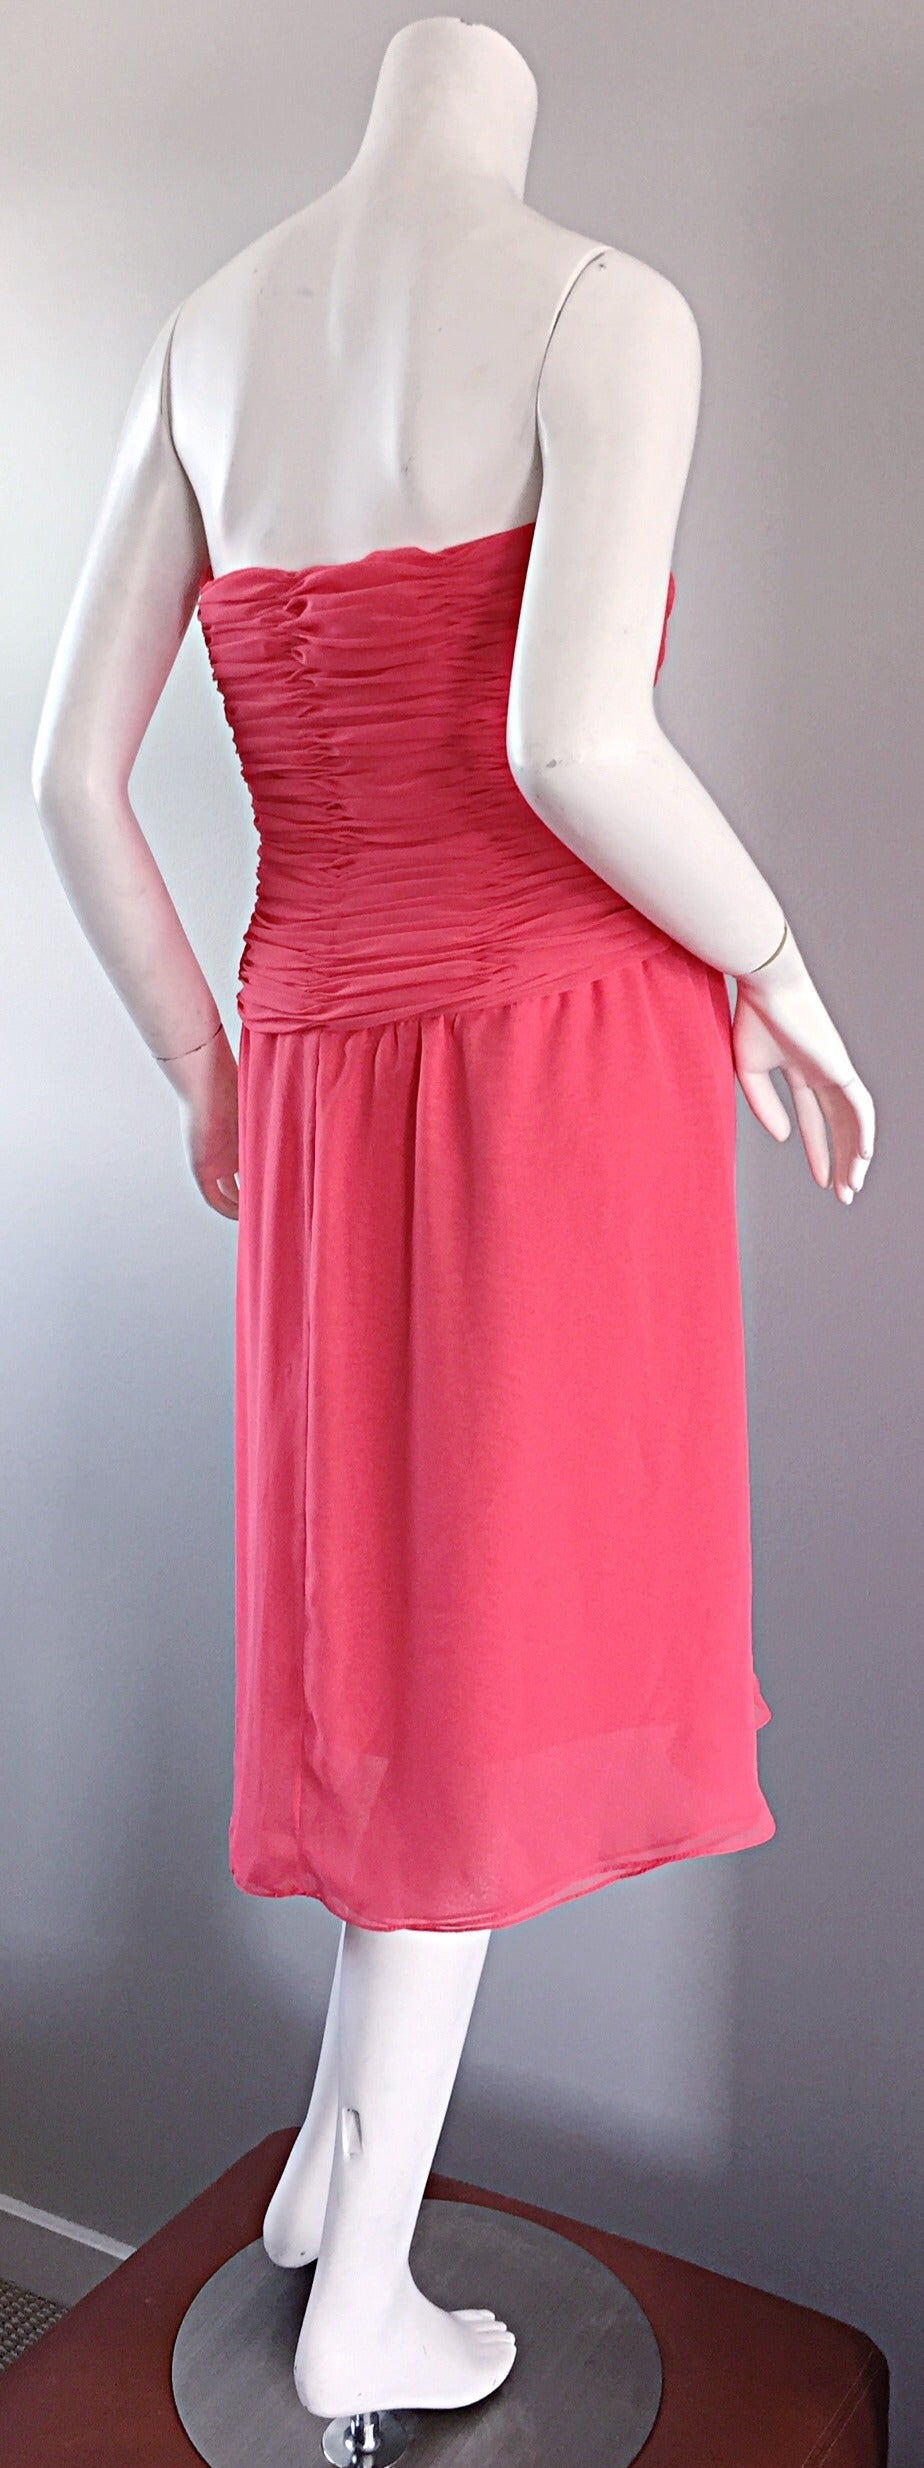 Victor Costa Coral Pink Strapless Flowy Knotted Vintage Cocktail Dress Size 8 10 4